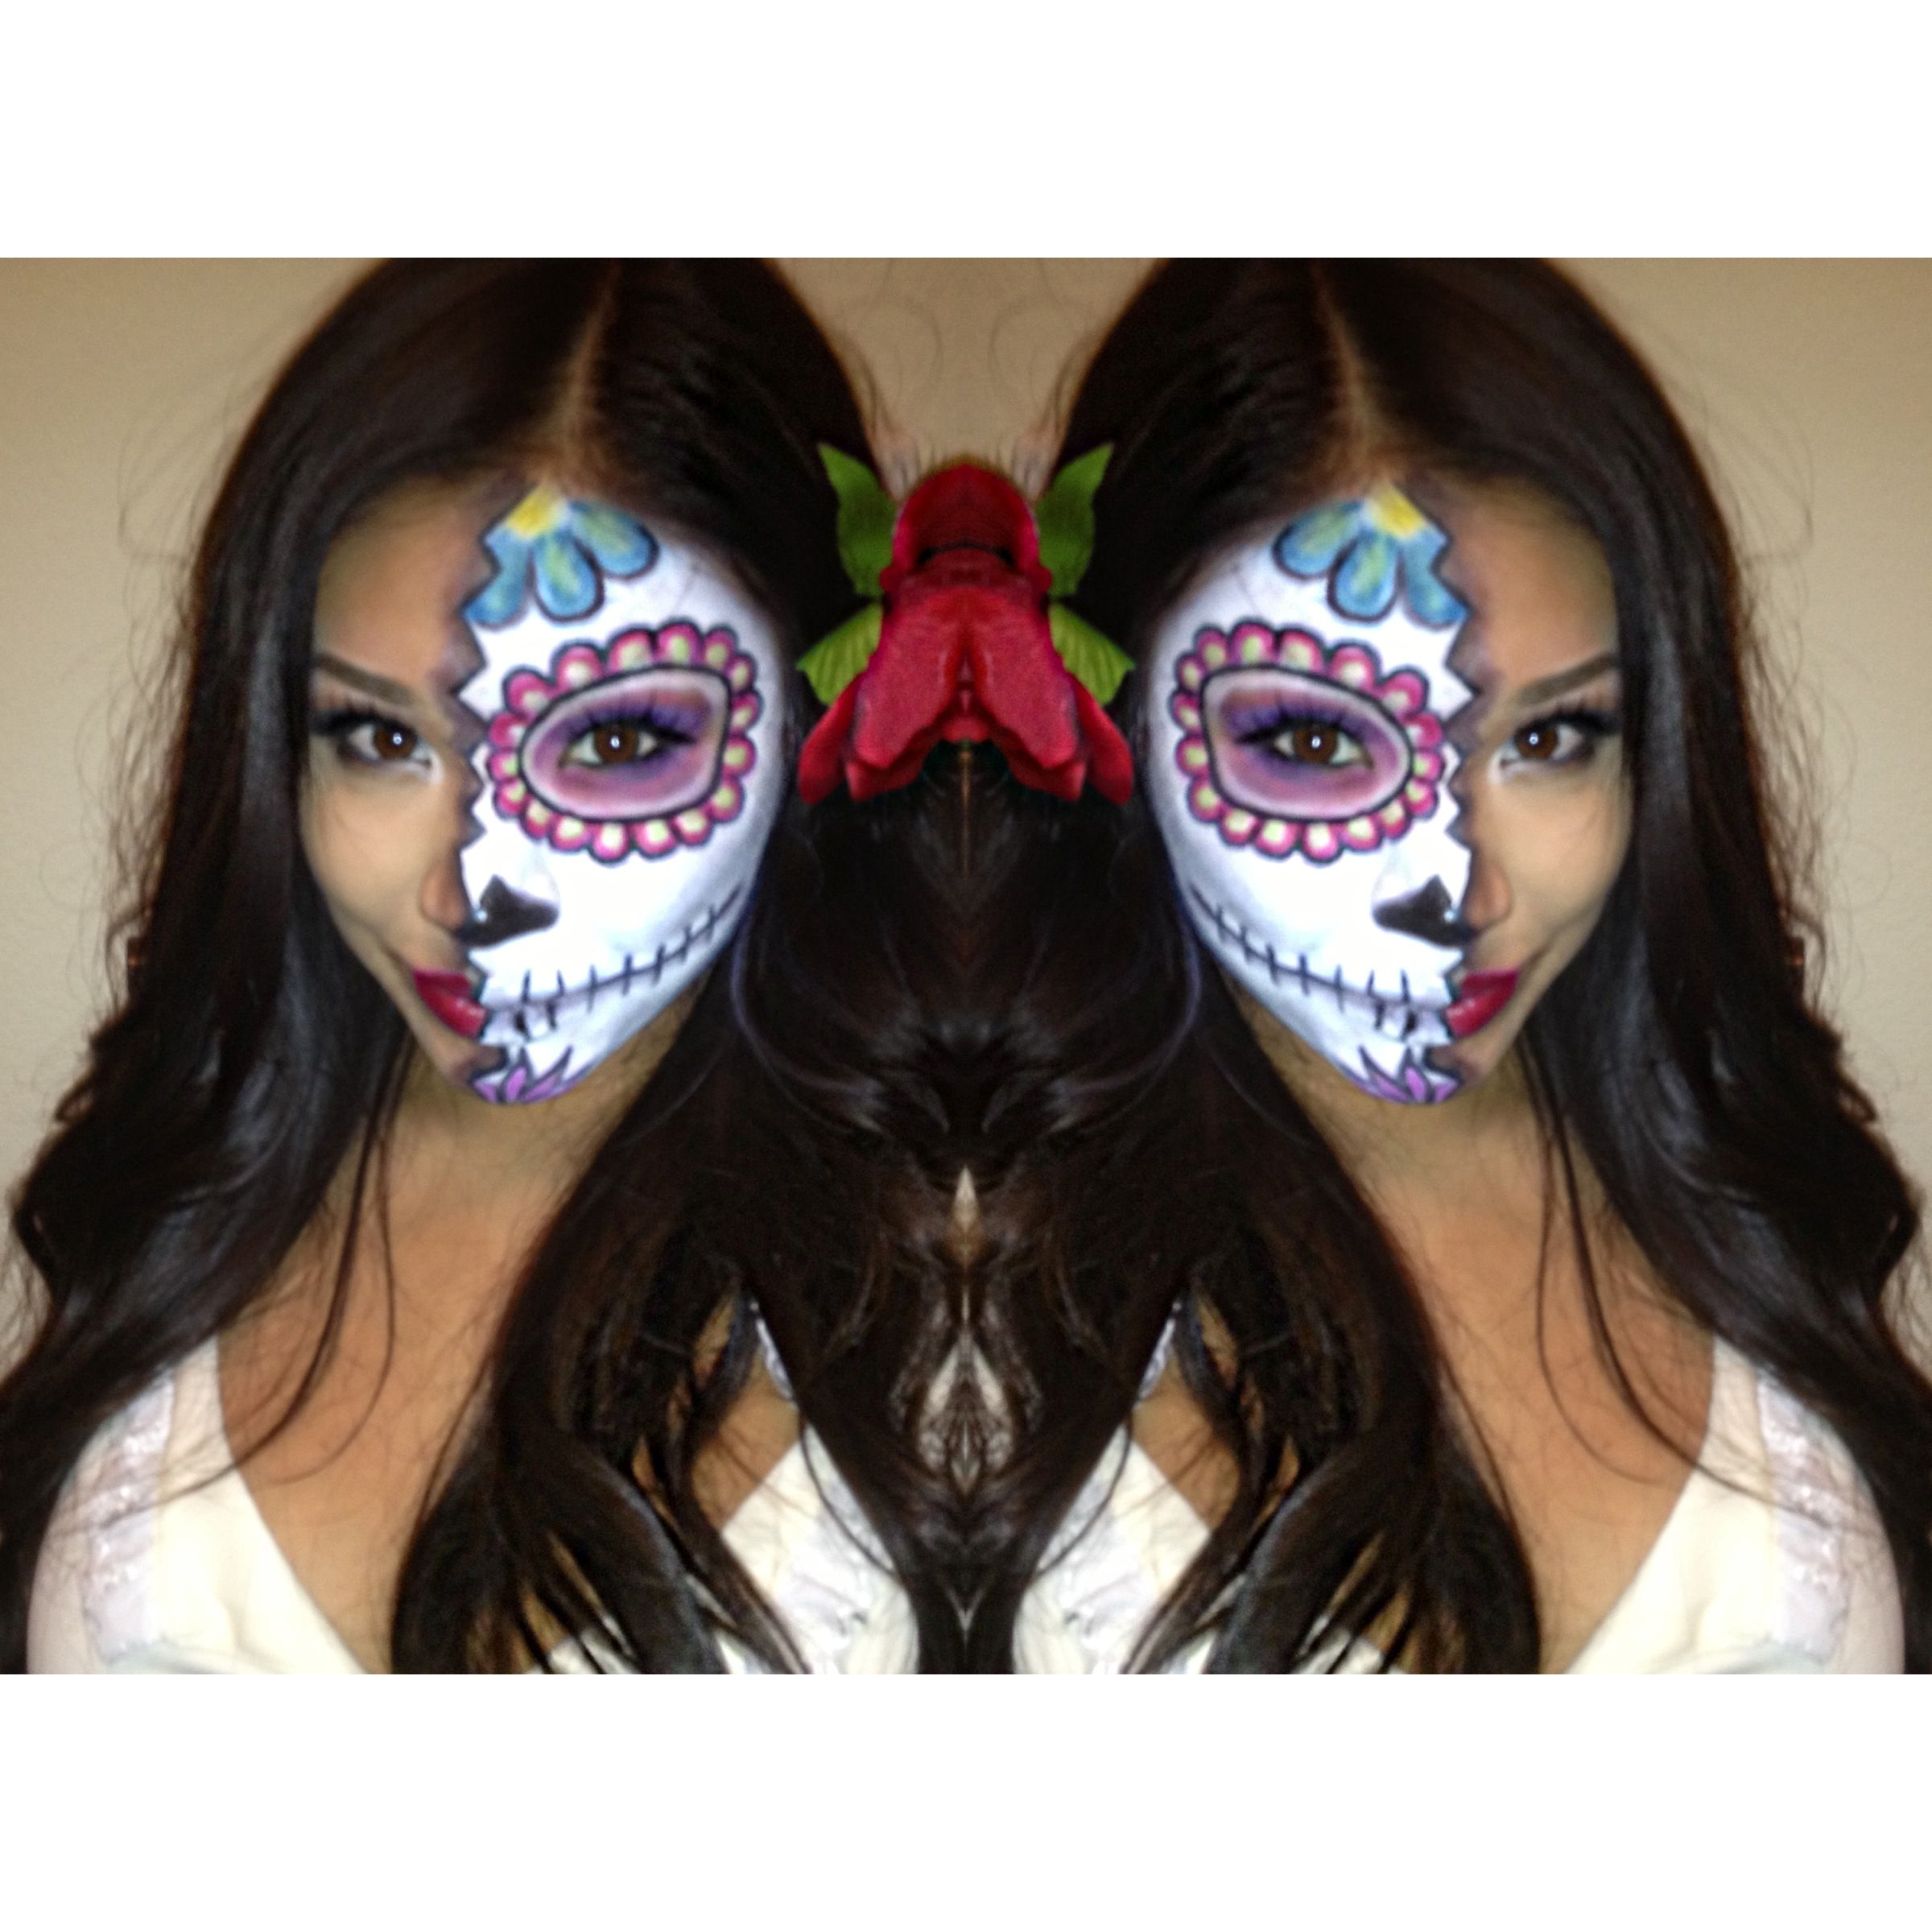 dia de los muertos day of the dead mexican sugar skull halloween makeup face paint half face - Halloween Day Of The Dead Face Paint